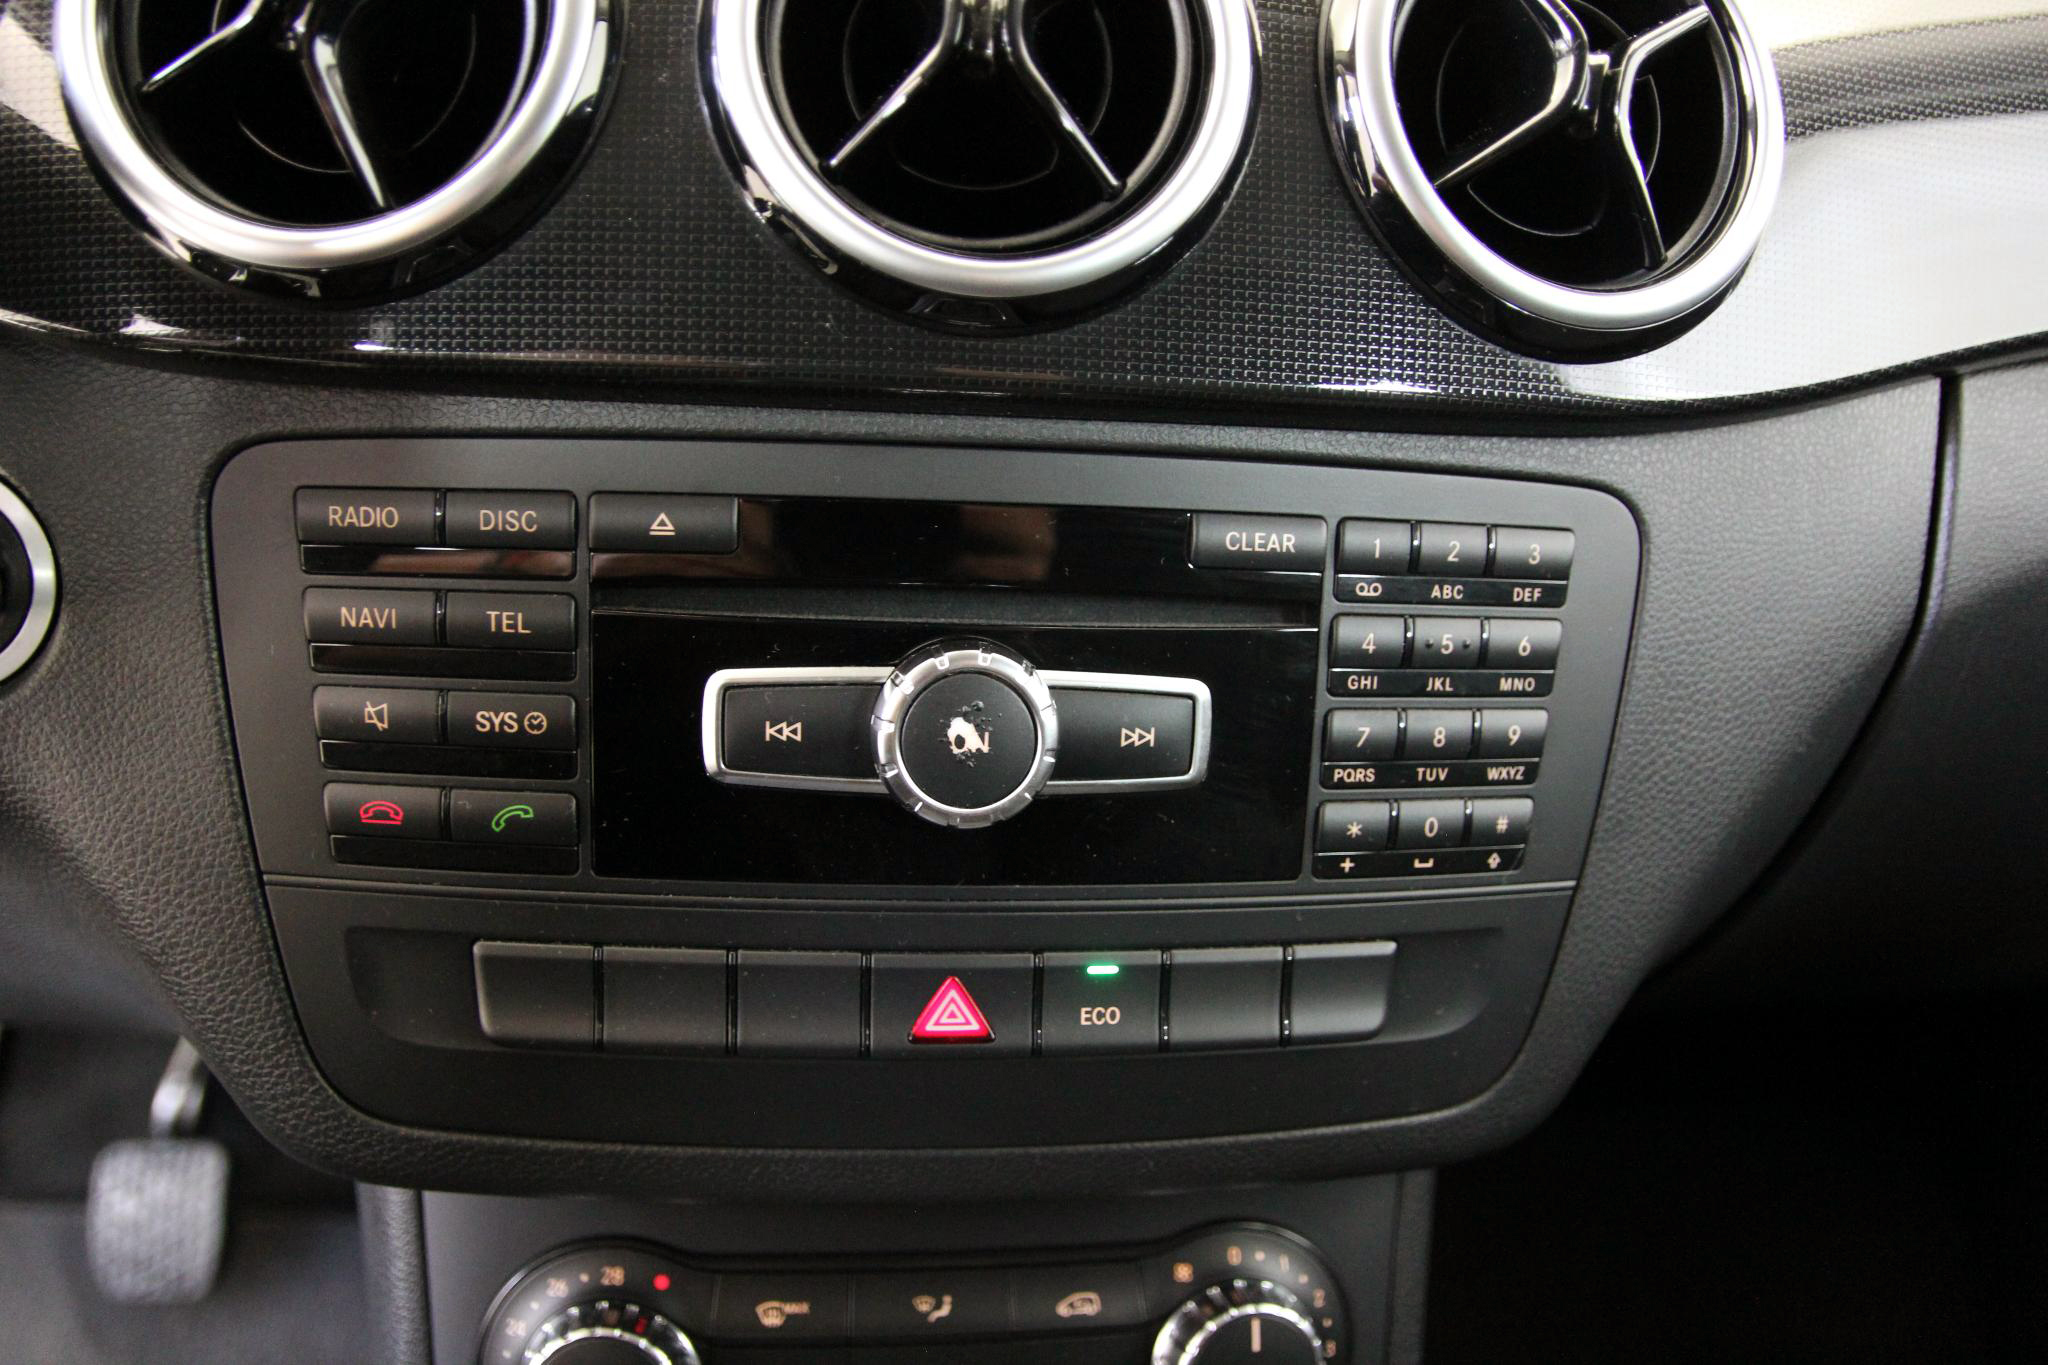 Mercedes-Benz Clase B CLASE B 180 CDI BLUE EFFICIENCY 5P imagen 26